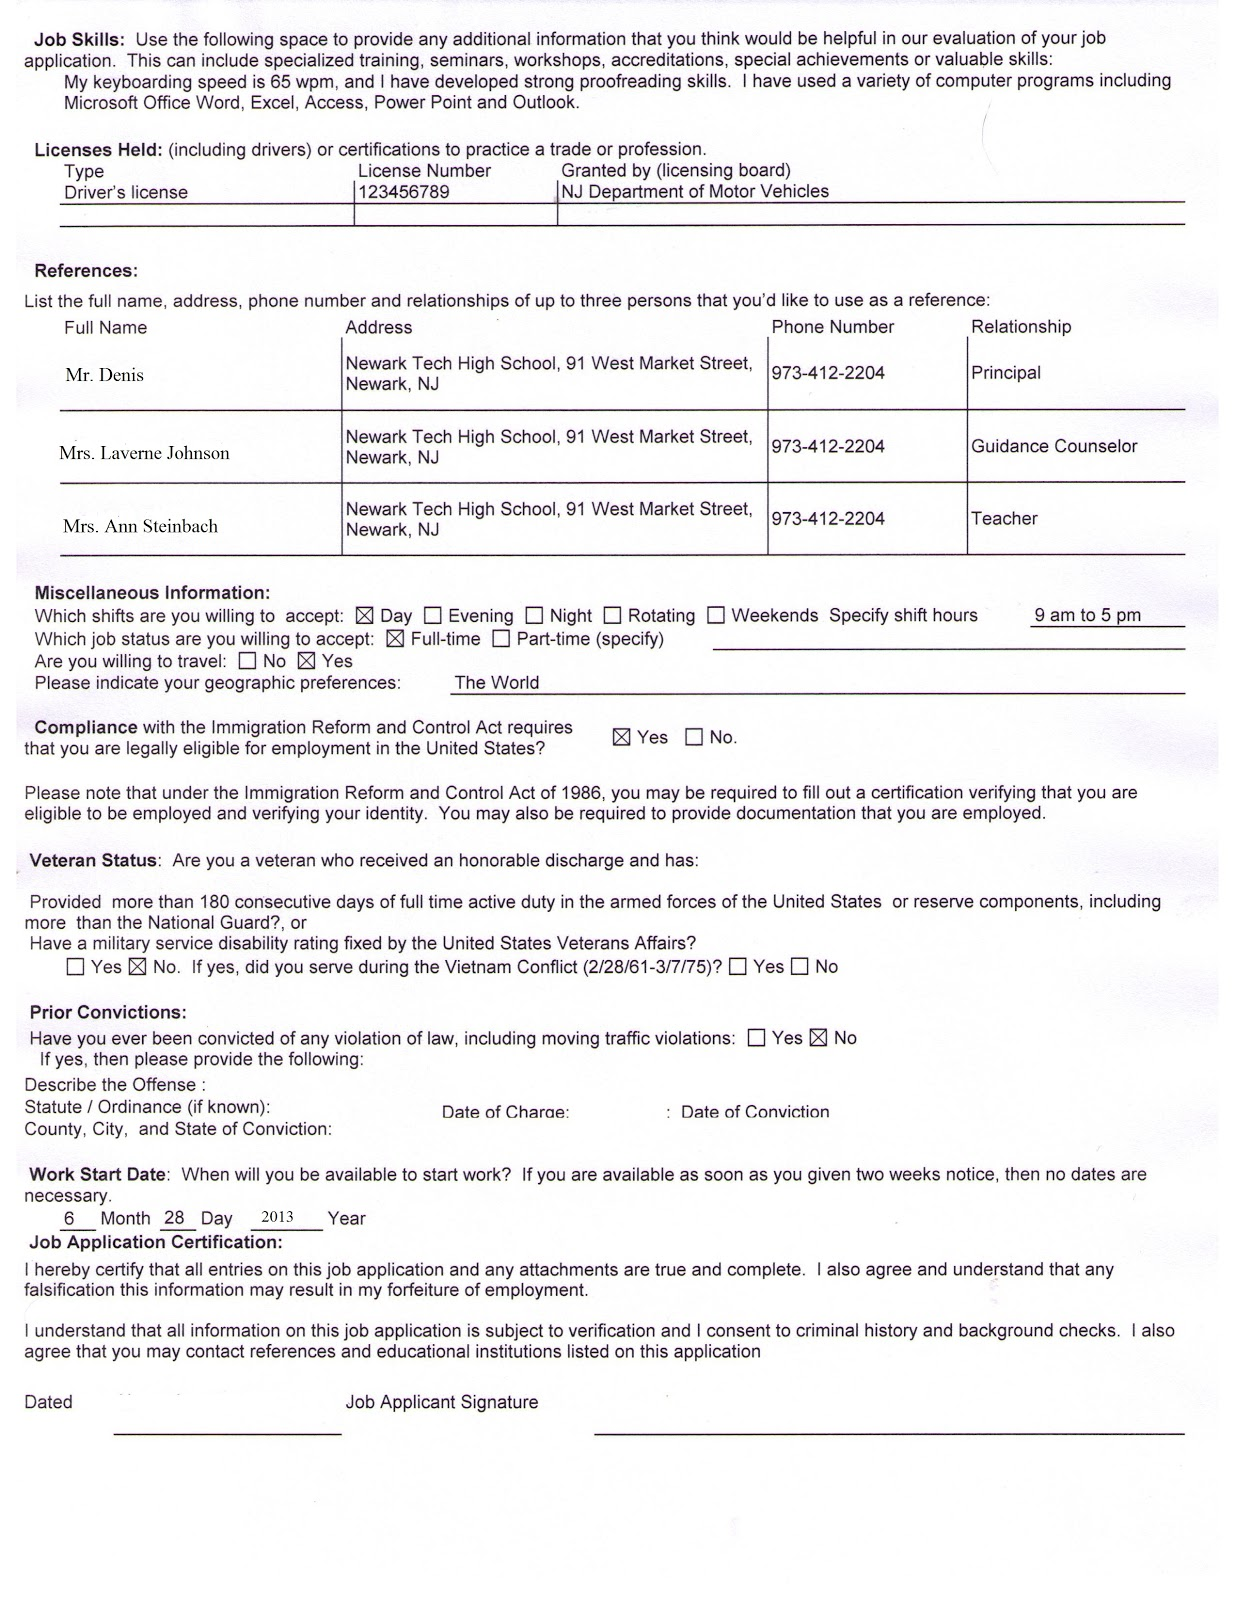 ... job application use this as a sample to fill out your own application